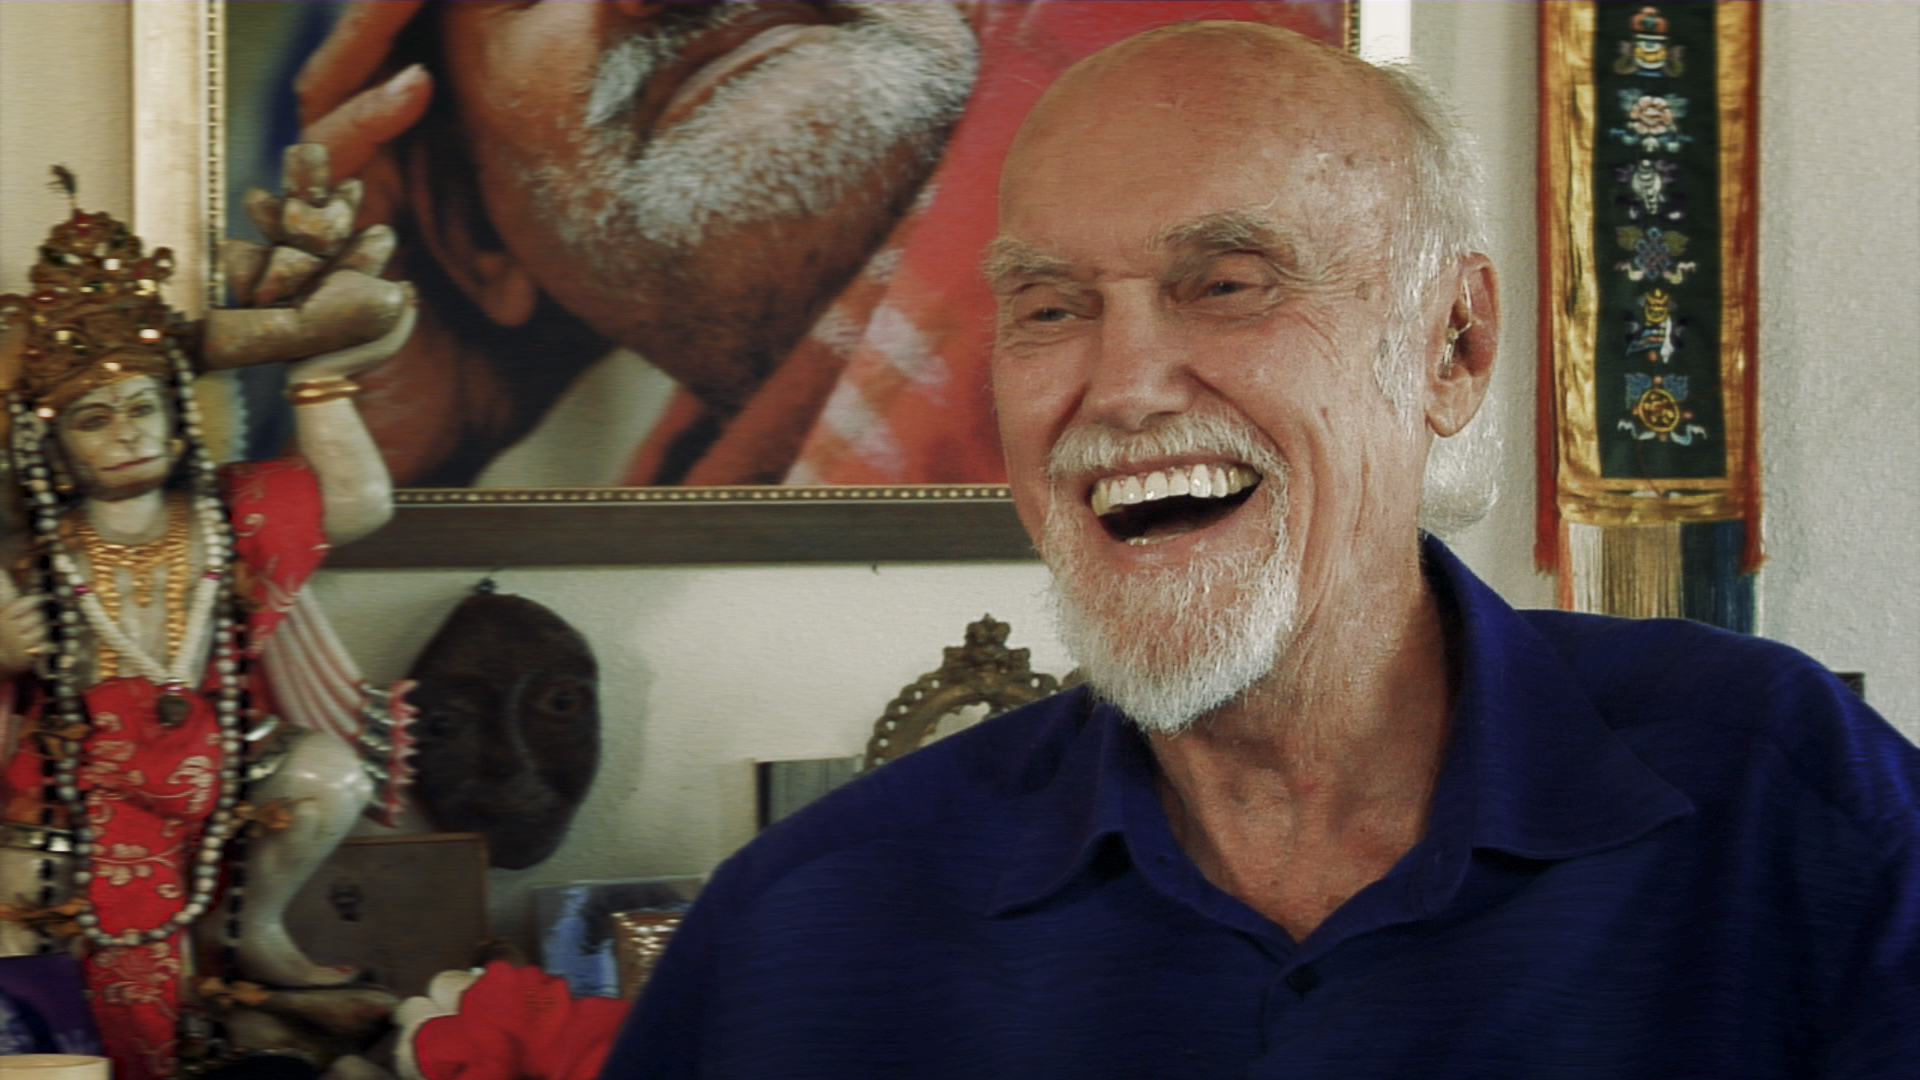 Ram Dass in a still from the upcoming documentary 'Becoming Nobody' by Jamie Catto